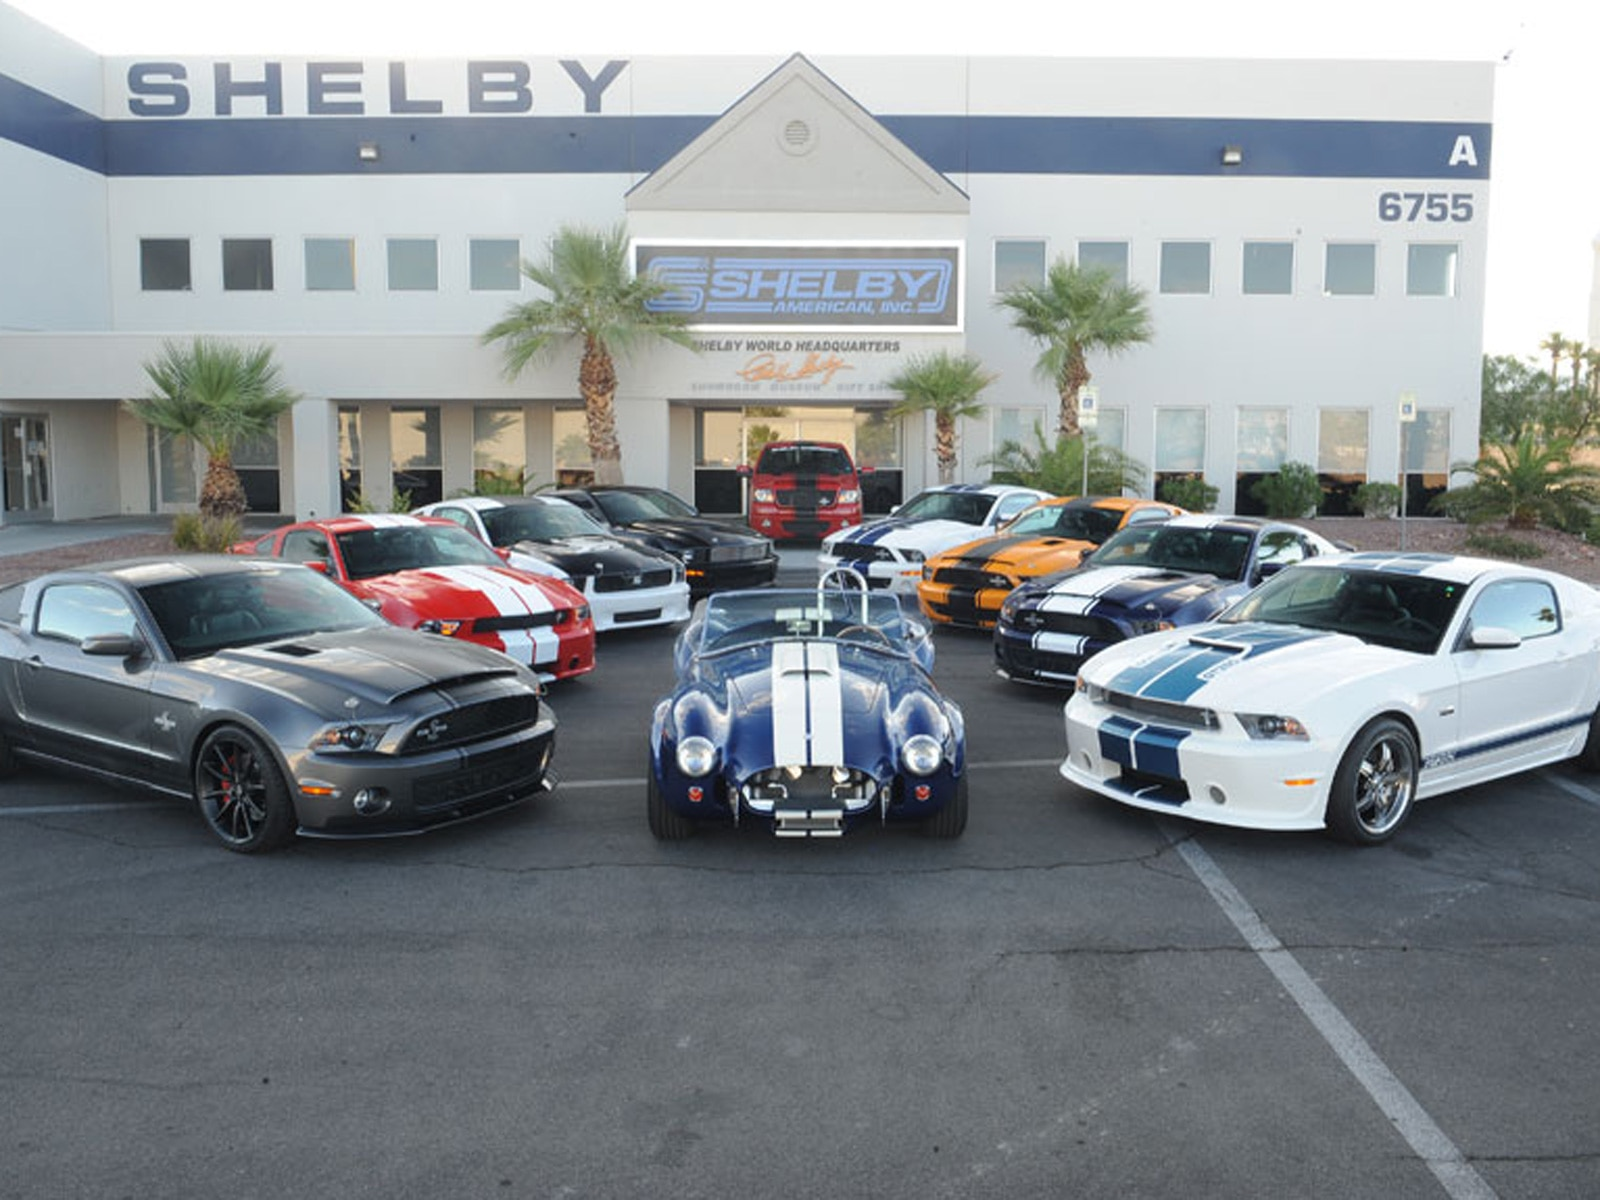 1306 Shelby American Headquarters